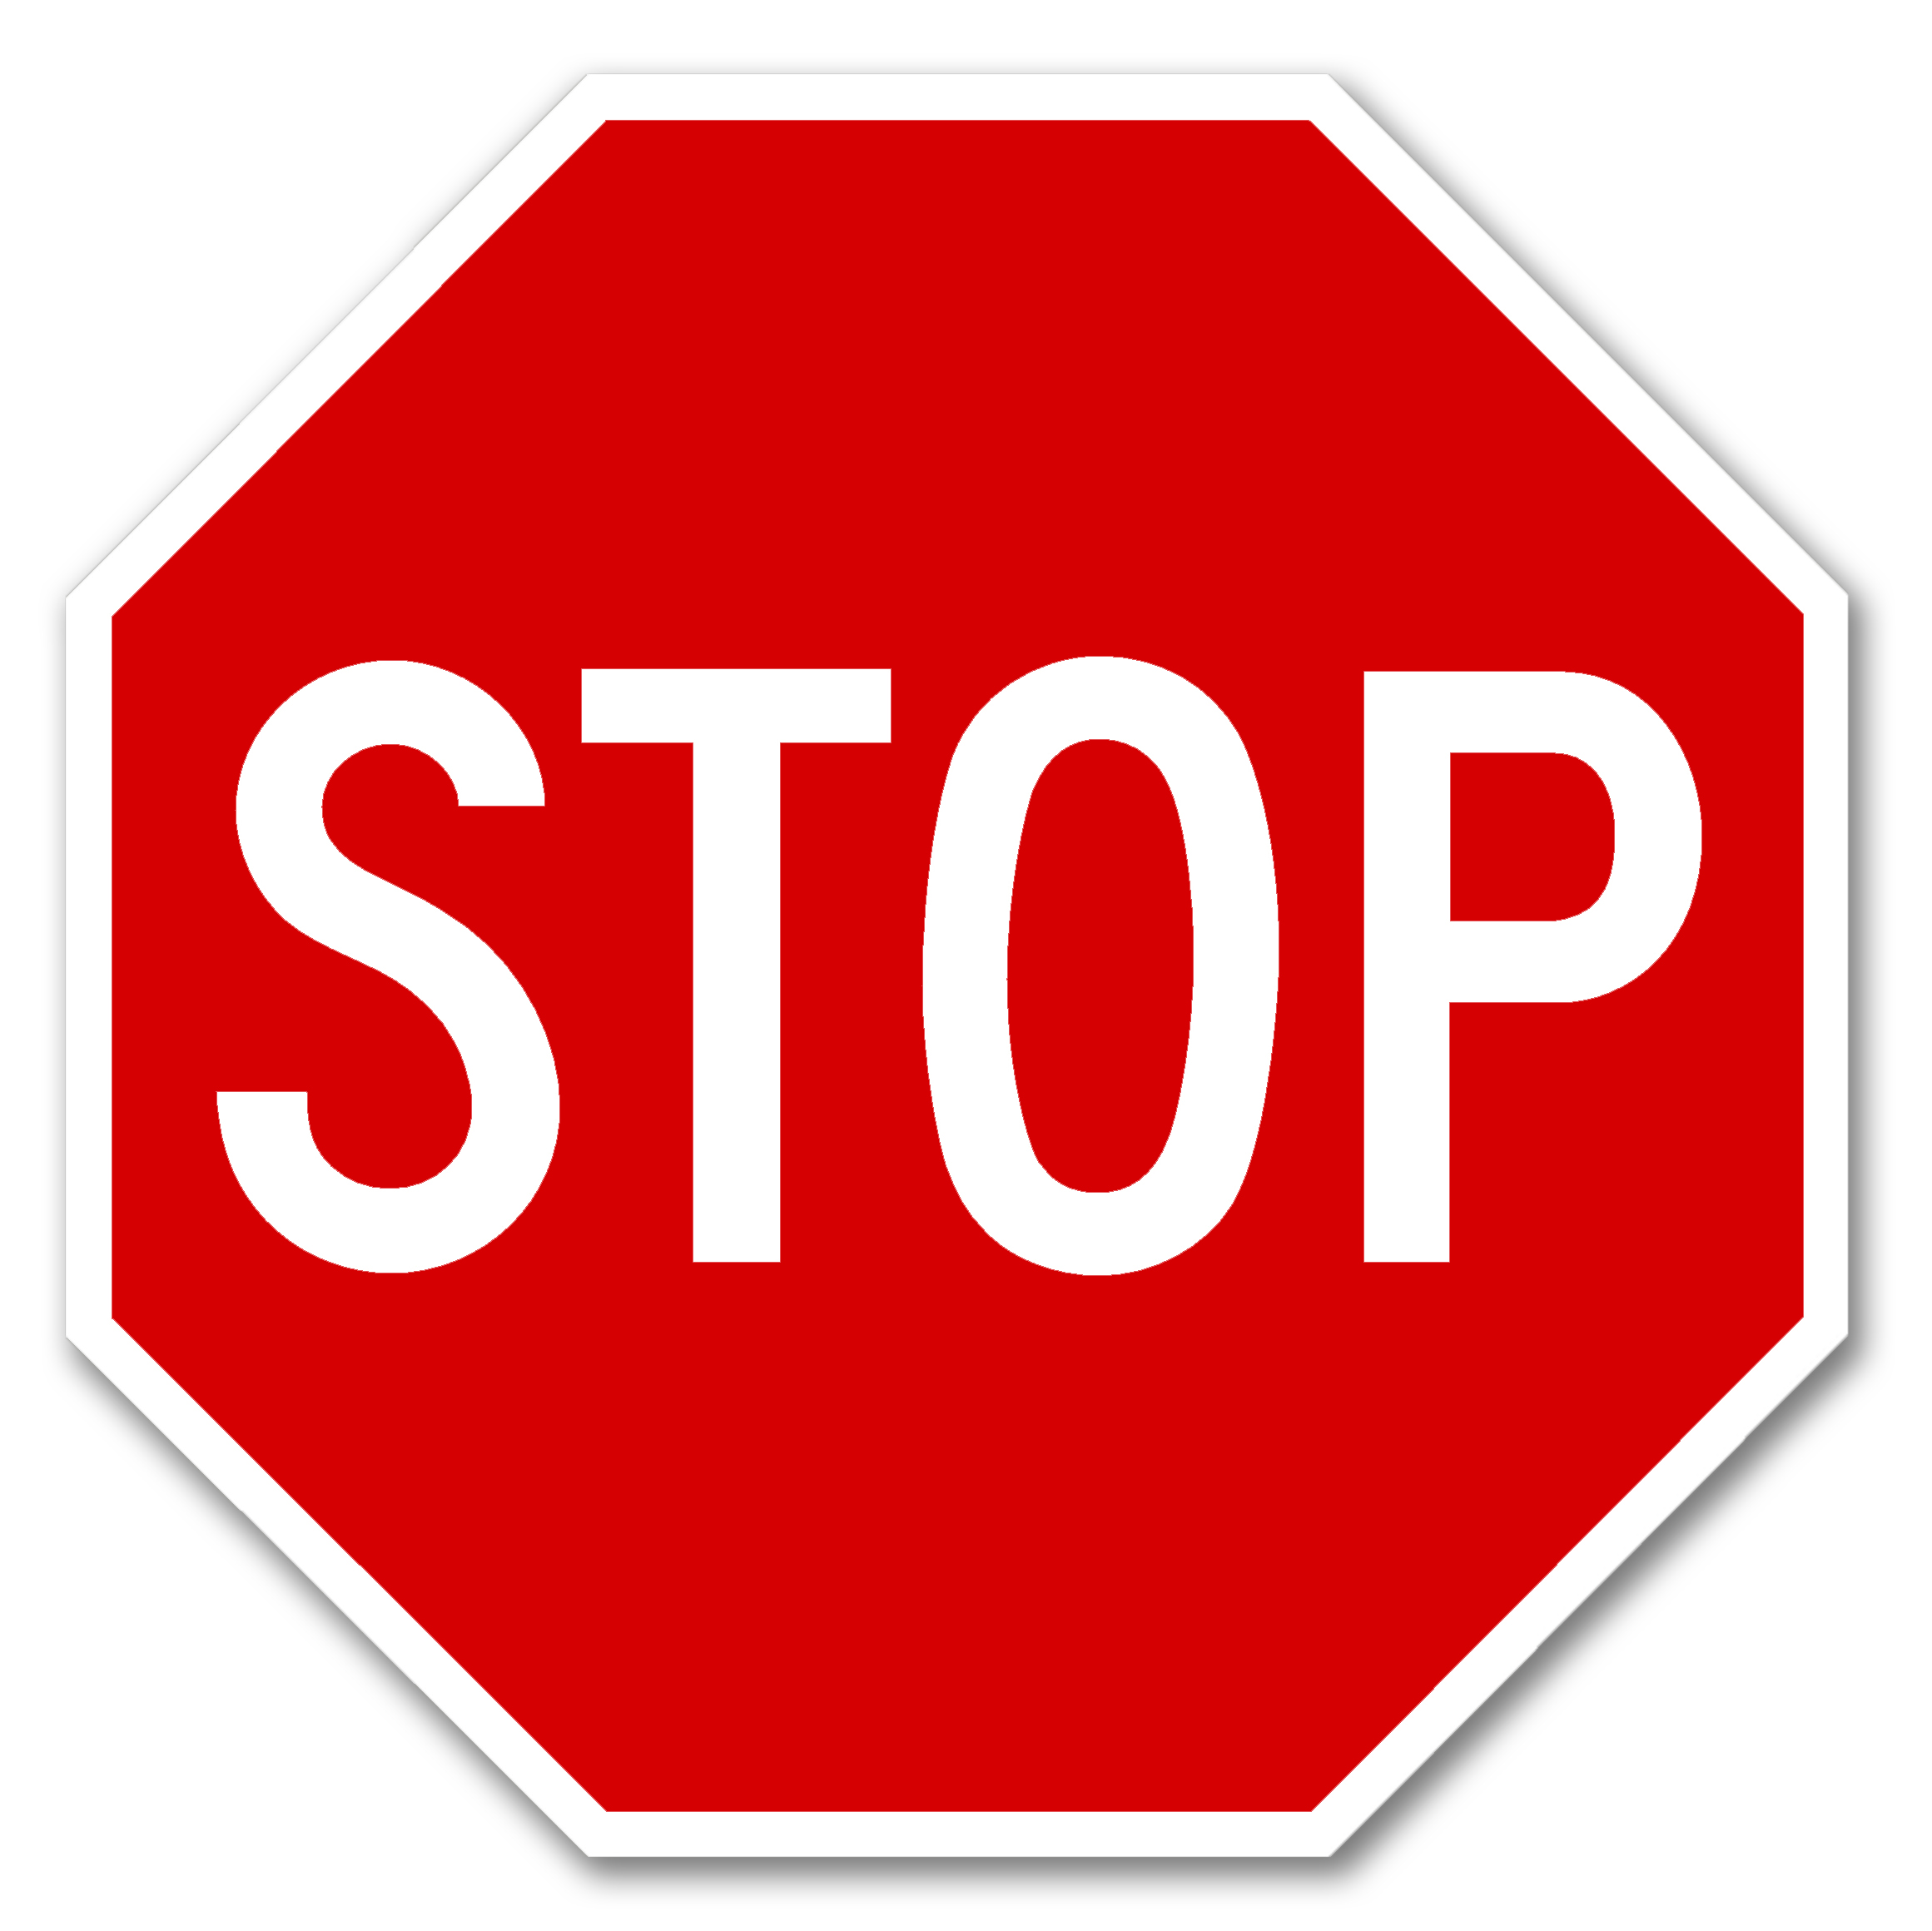 Stop and Regulatory Signs